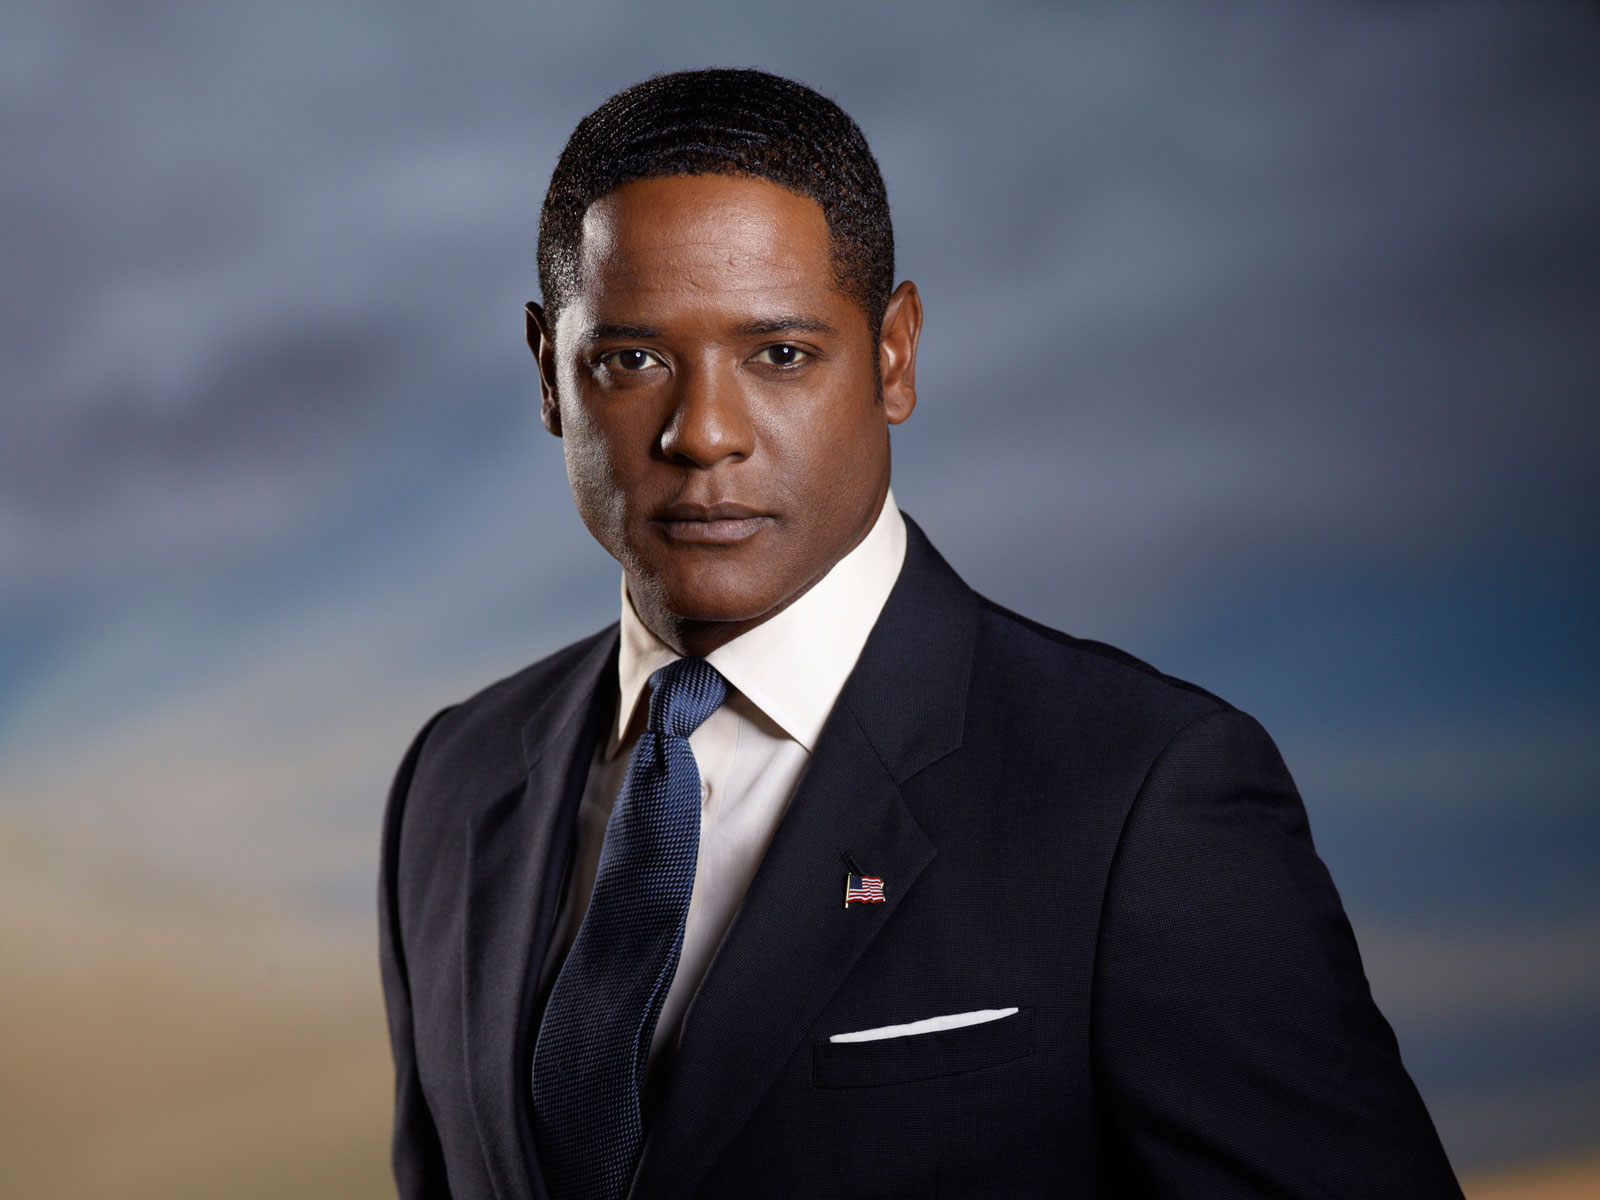 Blair Underwood widescreen wallpapers